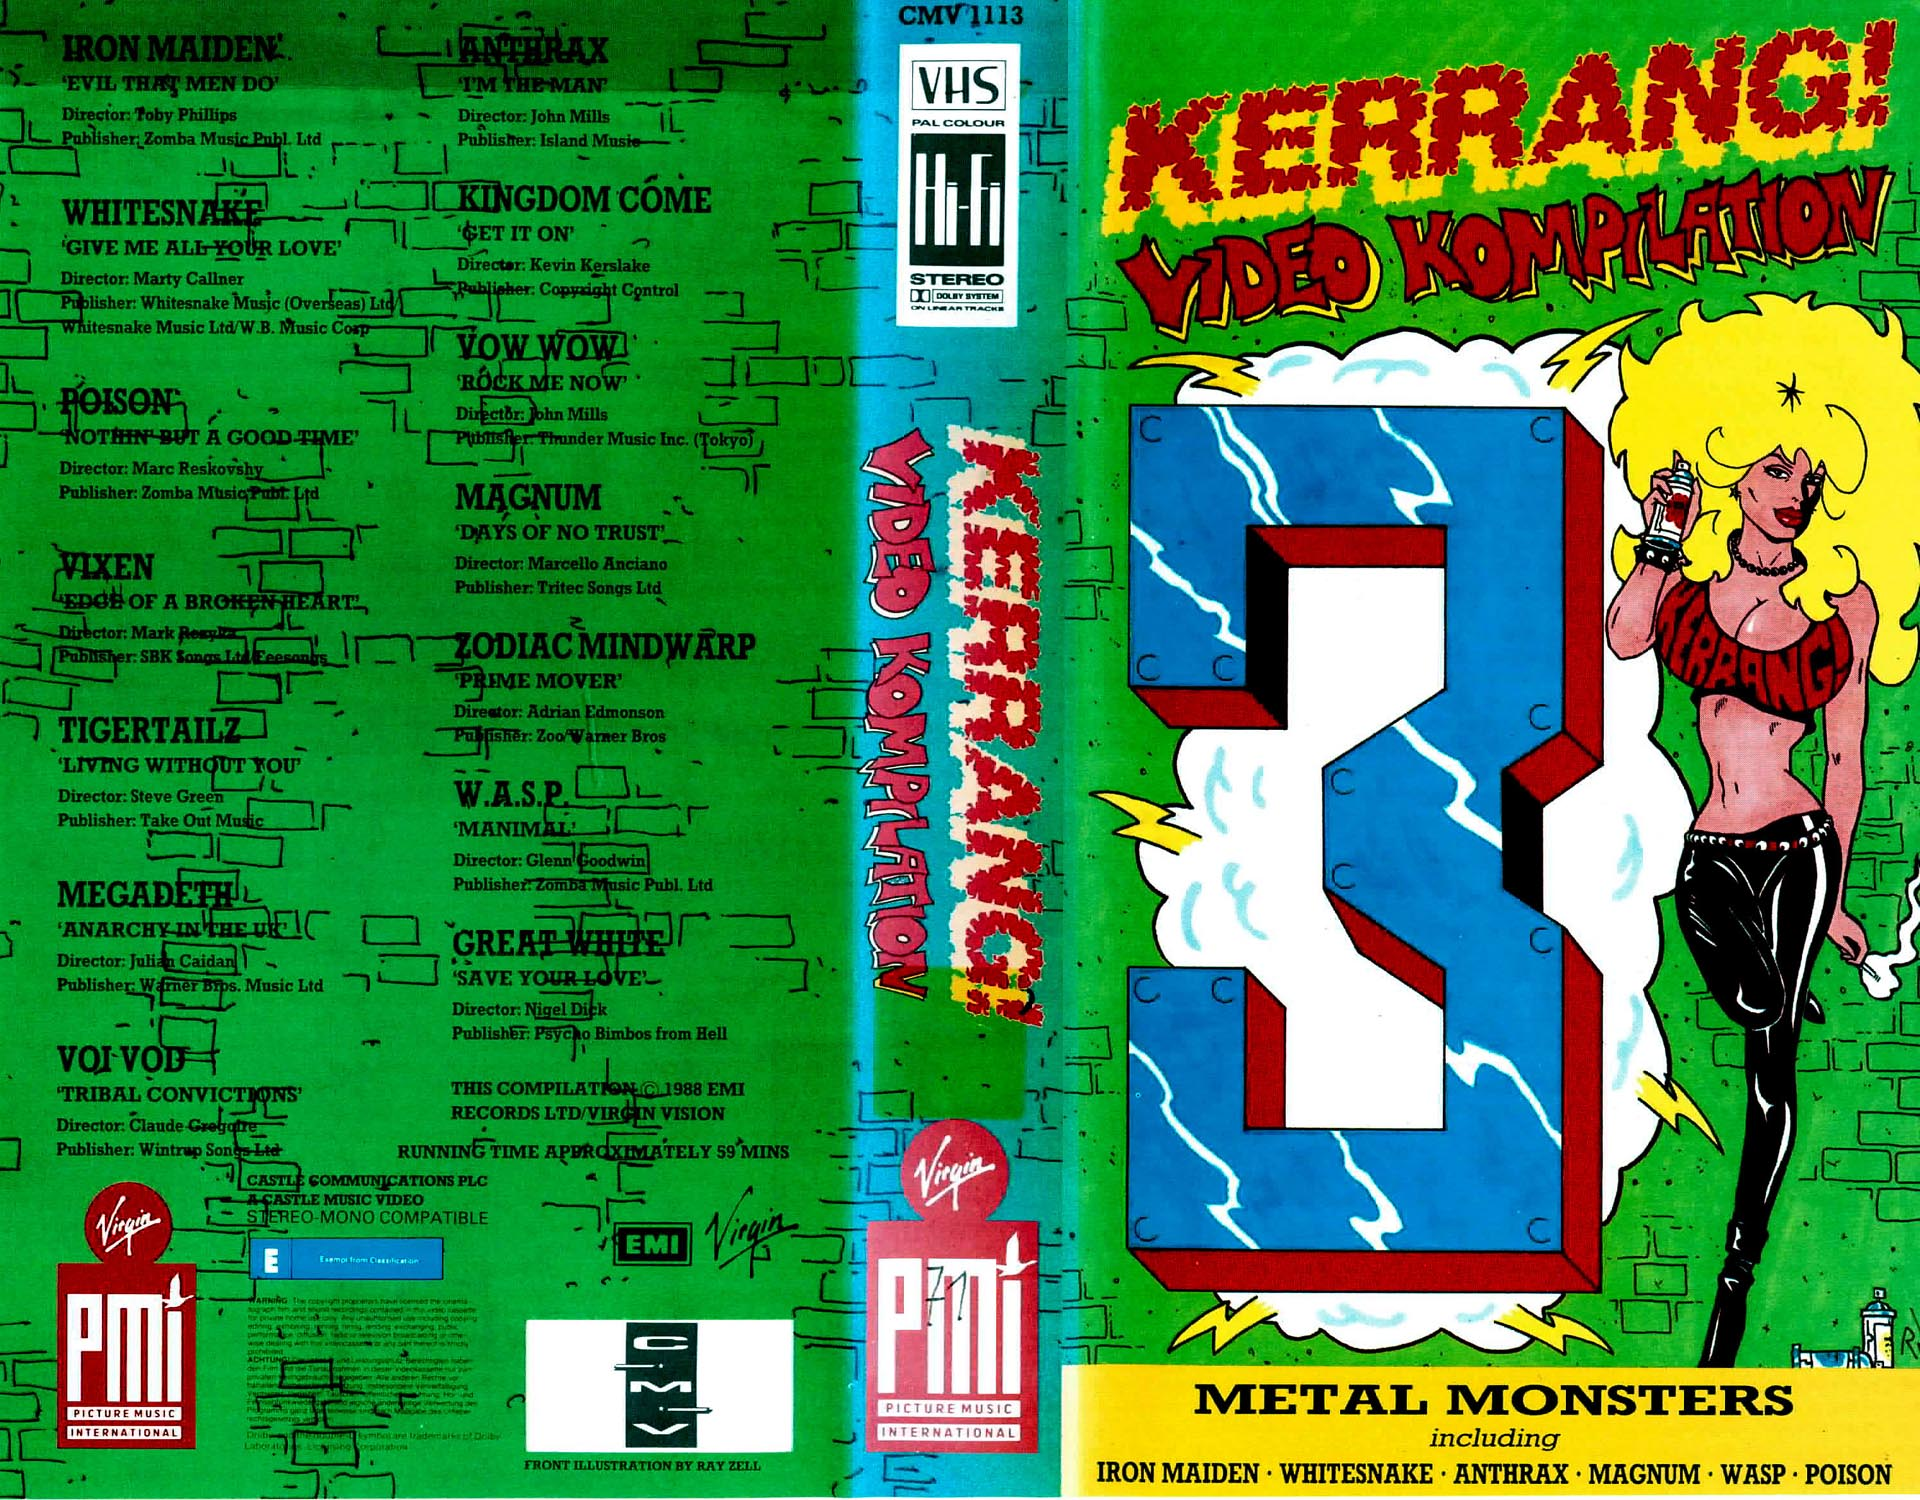 KERRANG! Video Kompilation Metal Monsters - Iron Maiden / Poison / Megadeth / W.A.S.P. u. v. a. m.